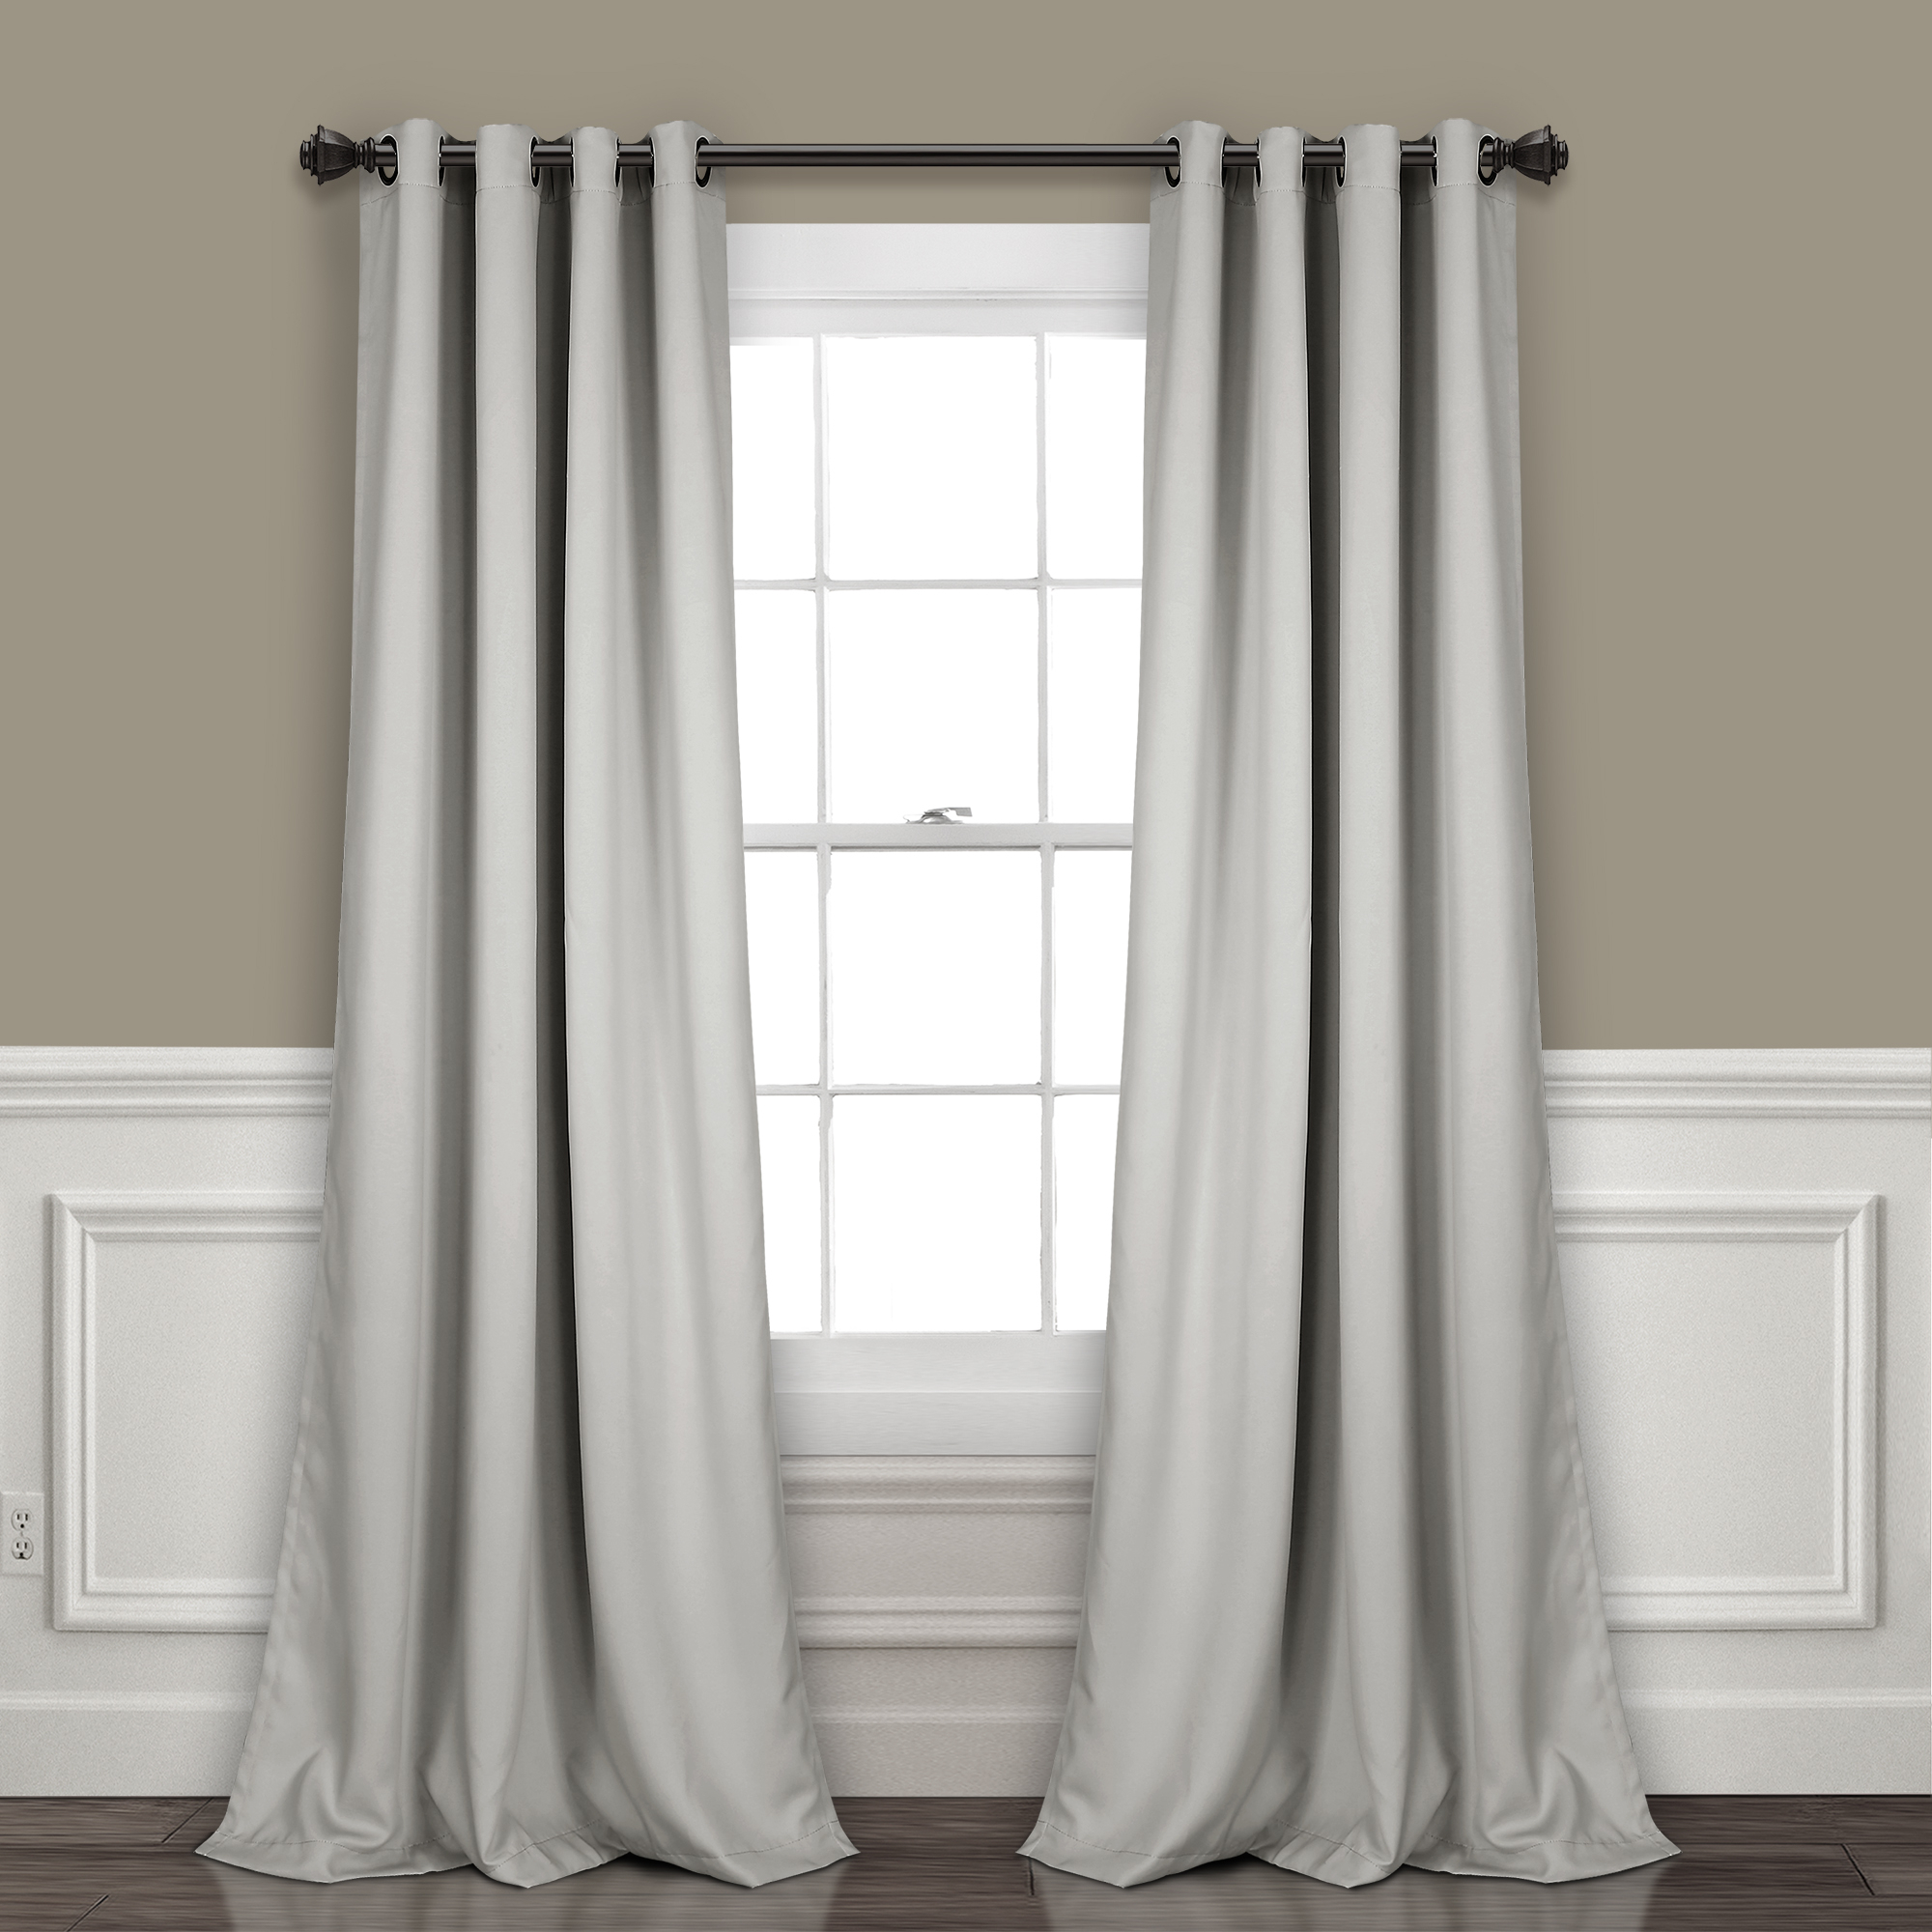 Lush Decor Insulated Grommet Blackout Curtain Panels Pair Pertaining To Insulated Grommet Blackout Curtain Panel Pairs (View 14 of 20)